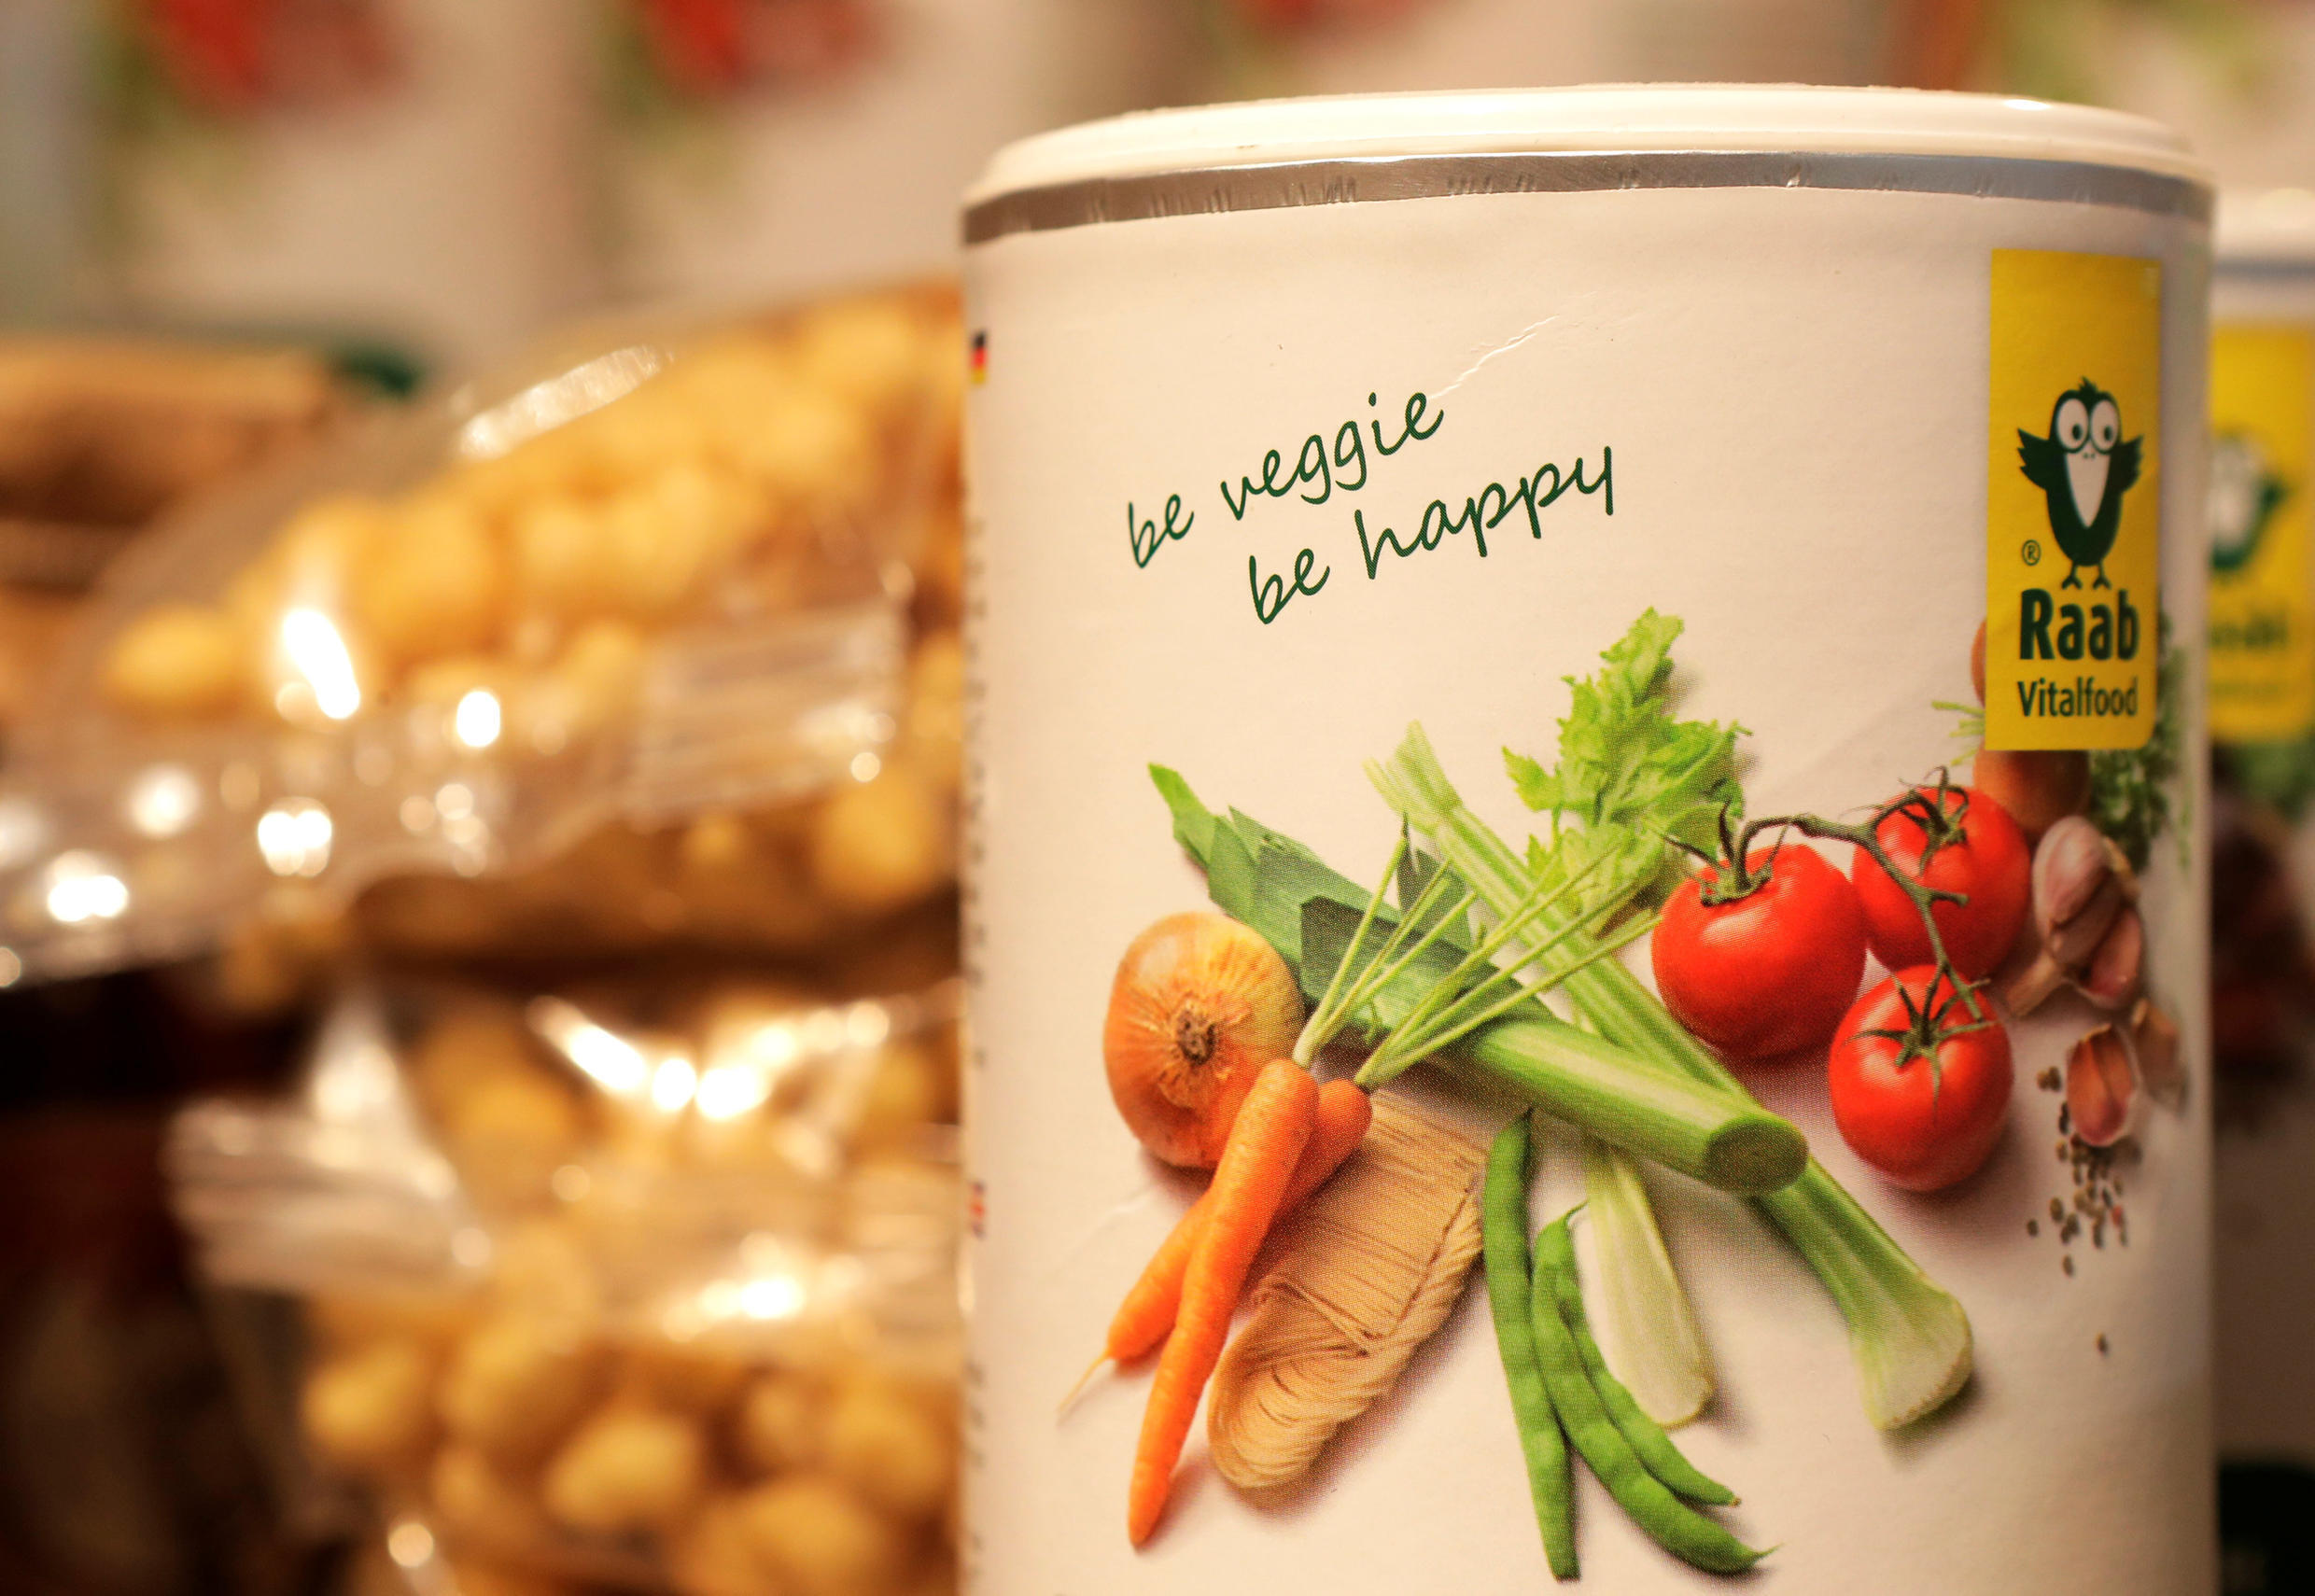 Around 5 percent of French people say they are vegan